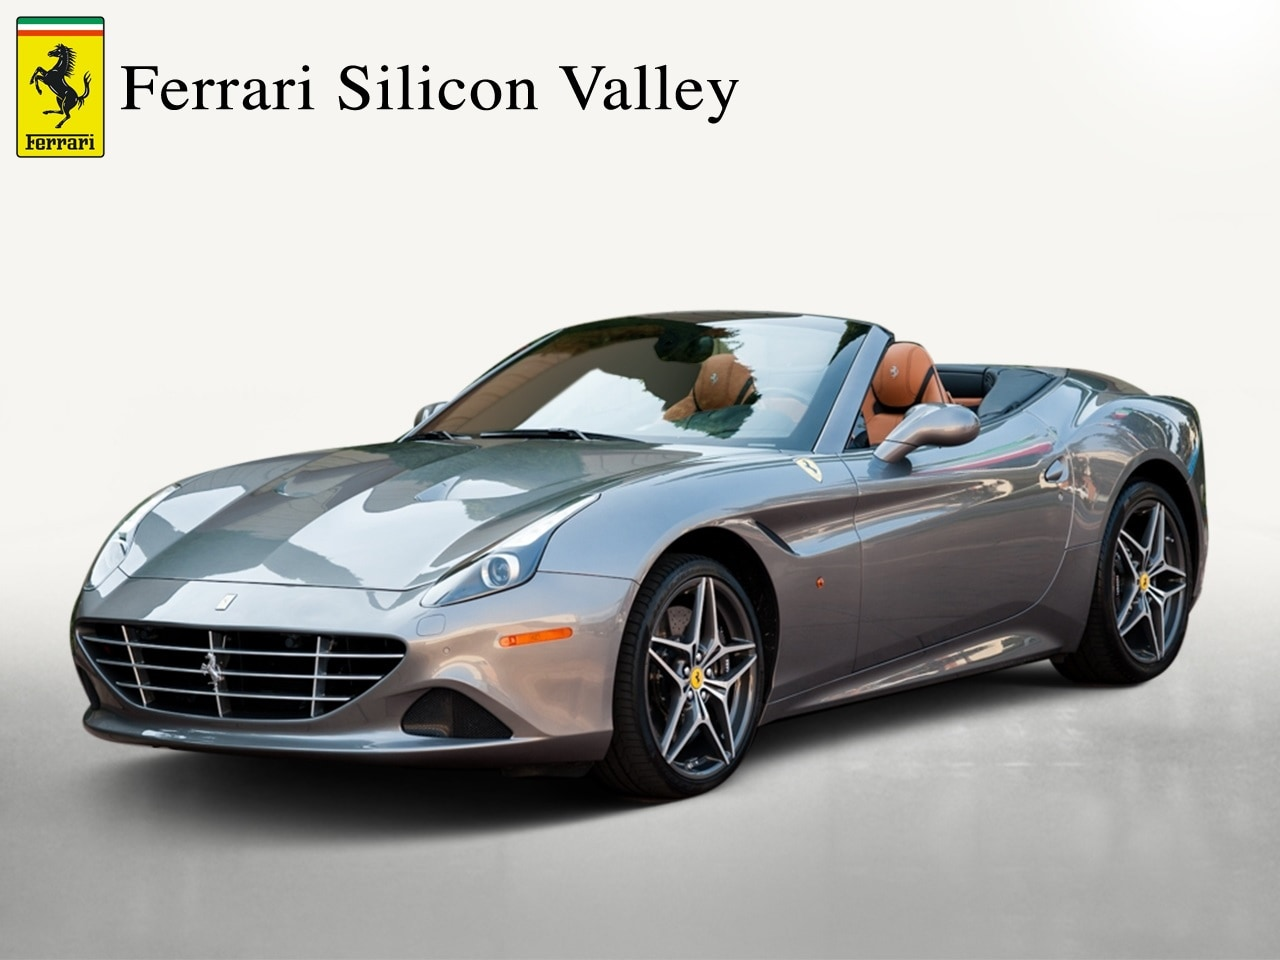 Certified Pre-Owned 2015 Ferrari California T Convertible For Sale Beverly Hills, CA